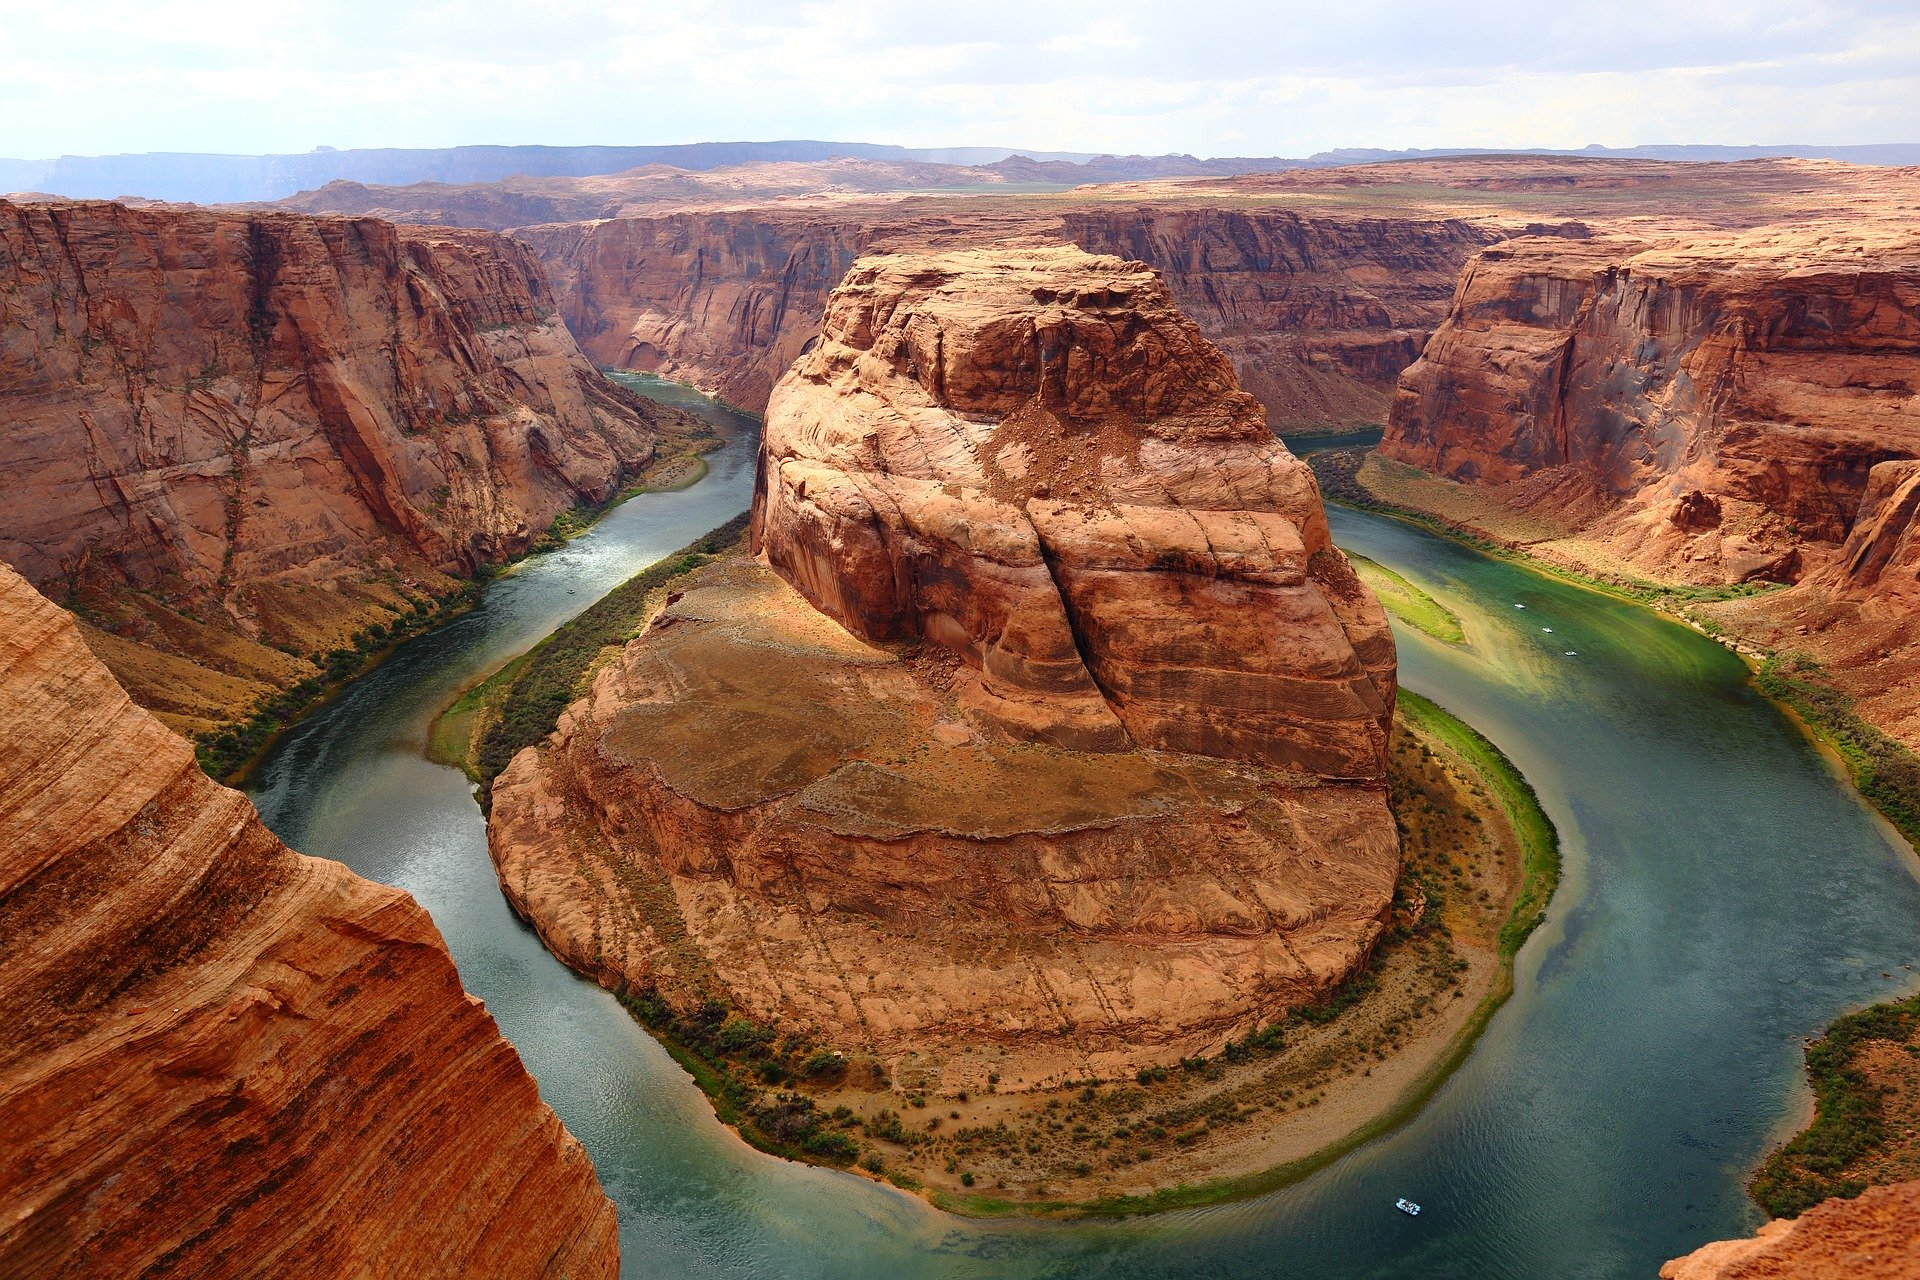 horseshoe-bend-1908283_1920 (1)